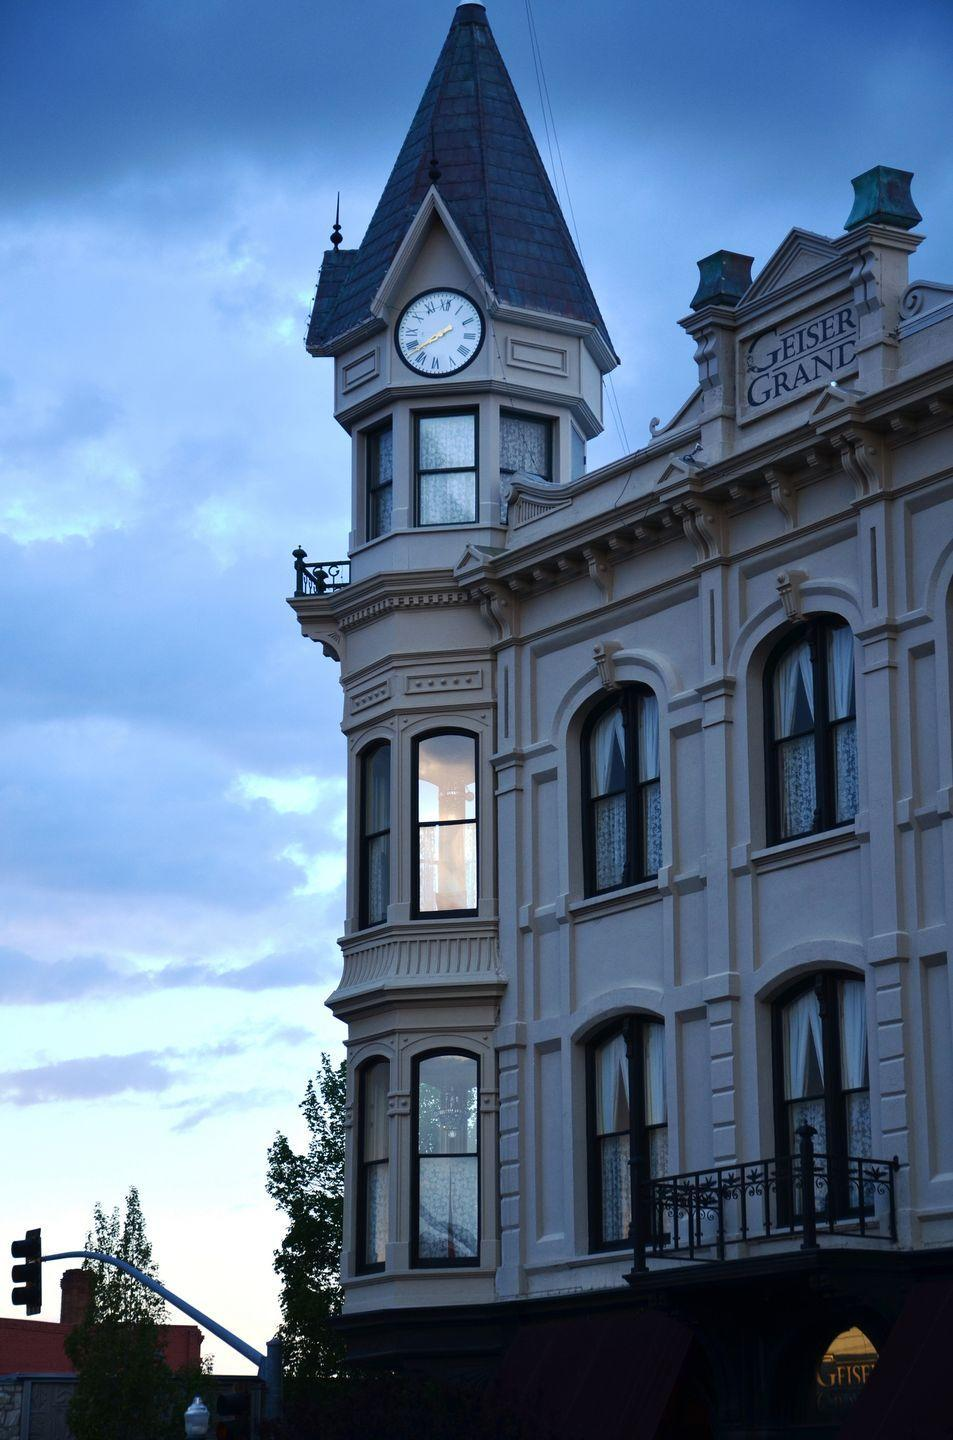 """<p>This historic property features well-appointed rooms and enough paranormal activity (think faucets turning on by themselves or Gibson Girl-like apparitions) to draw guests from around the globe. Most recently, a Japanese film crew visited the Geiser Grand to capture ghost footage for FujiTV.<br></p><p><a class=""""link rapid-noclick-resp"""" href=""""https://go.redirectingat.com?id=74968X1596630&url=https%3A%2F%2Fwww.tripadvisor.com%2FHotel_Review-g51757-d114284-Reviews-Geiser_Grand_Hotel-Baker_City_Oregon.html&sref=https%3A%2F%2Fwww.countryliving.com%2Flife%2Ftravel%2Fg2689%2Fmost-haunted-hotels-in-america%2F"""" rel=""""nofollow noopener"""" target=""""_blank"""" data-ylk=""""slk:PLAN YOUR TRIP"""">PLAN YOUR TRIP </a></p>"""